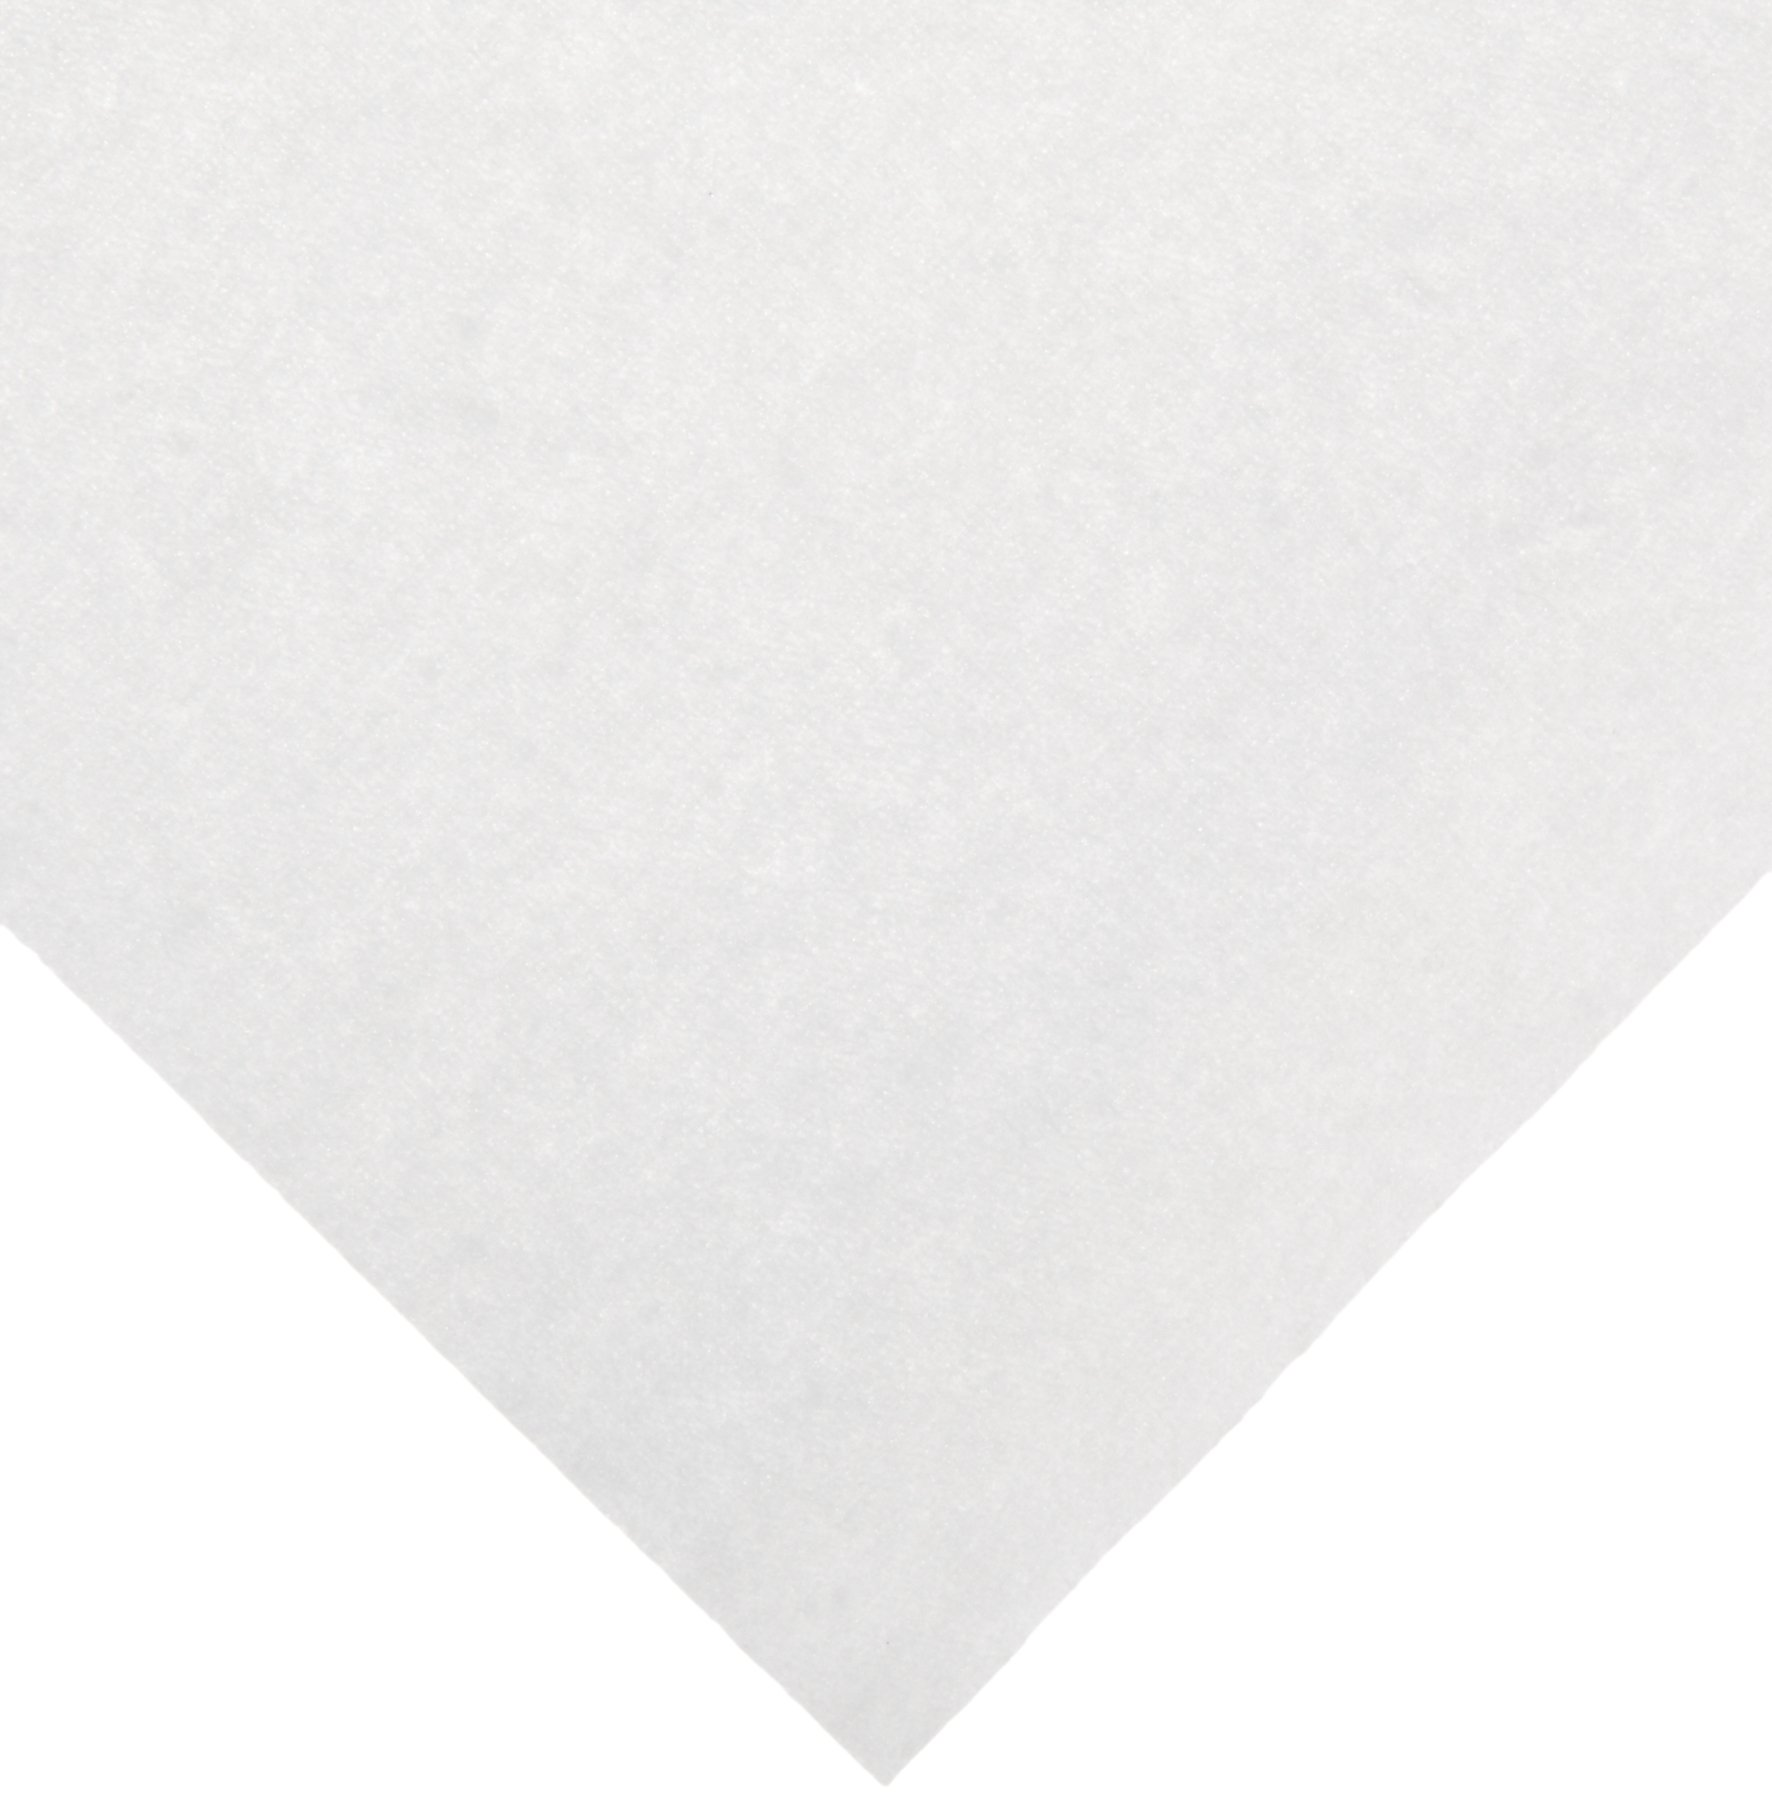 ThermoSafe ZORB66 Absorbent Sheet, Holds 360ml Water and 90ml Blood, 6'' Length x 6'' Width (Case of 500) by Thermosafe